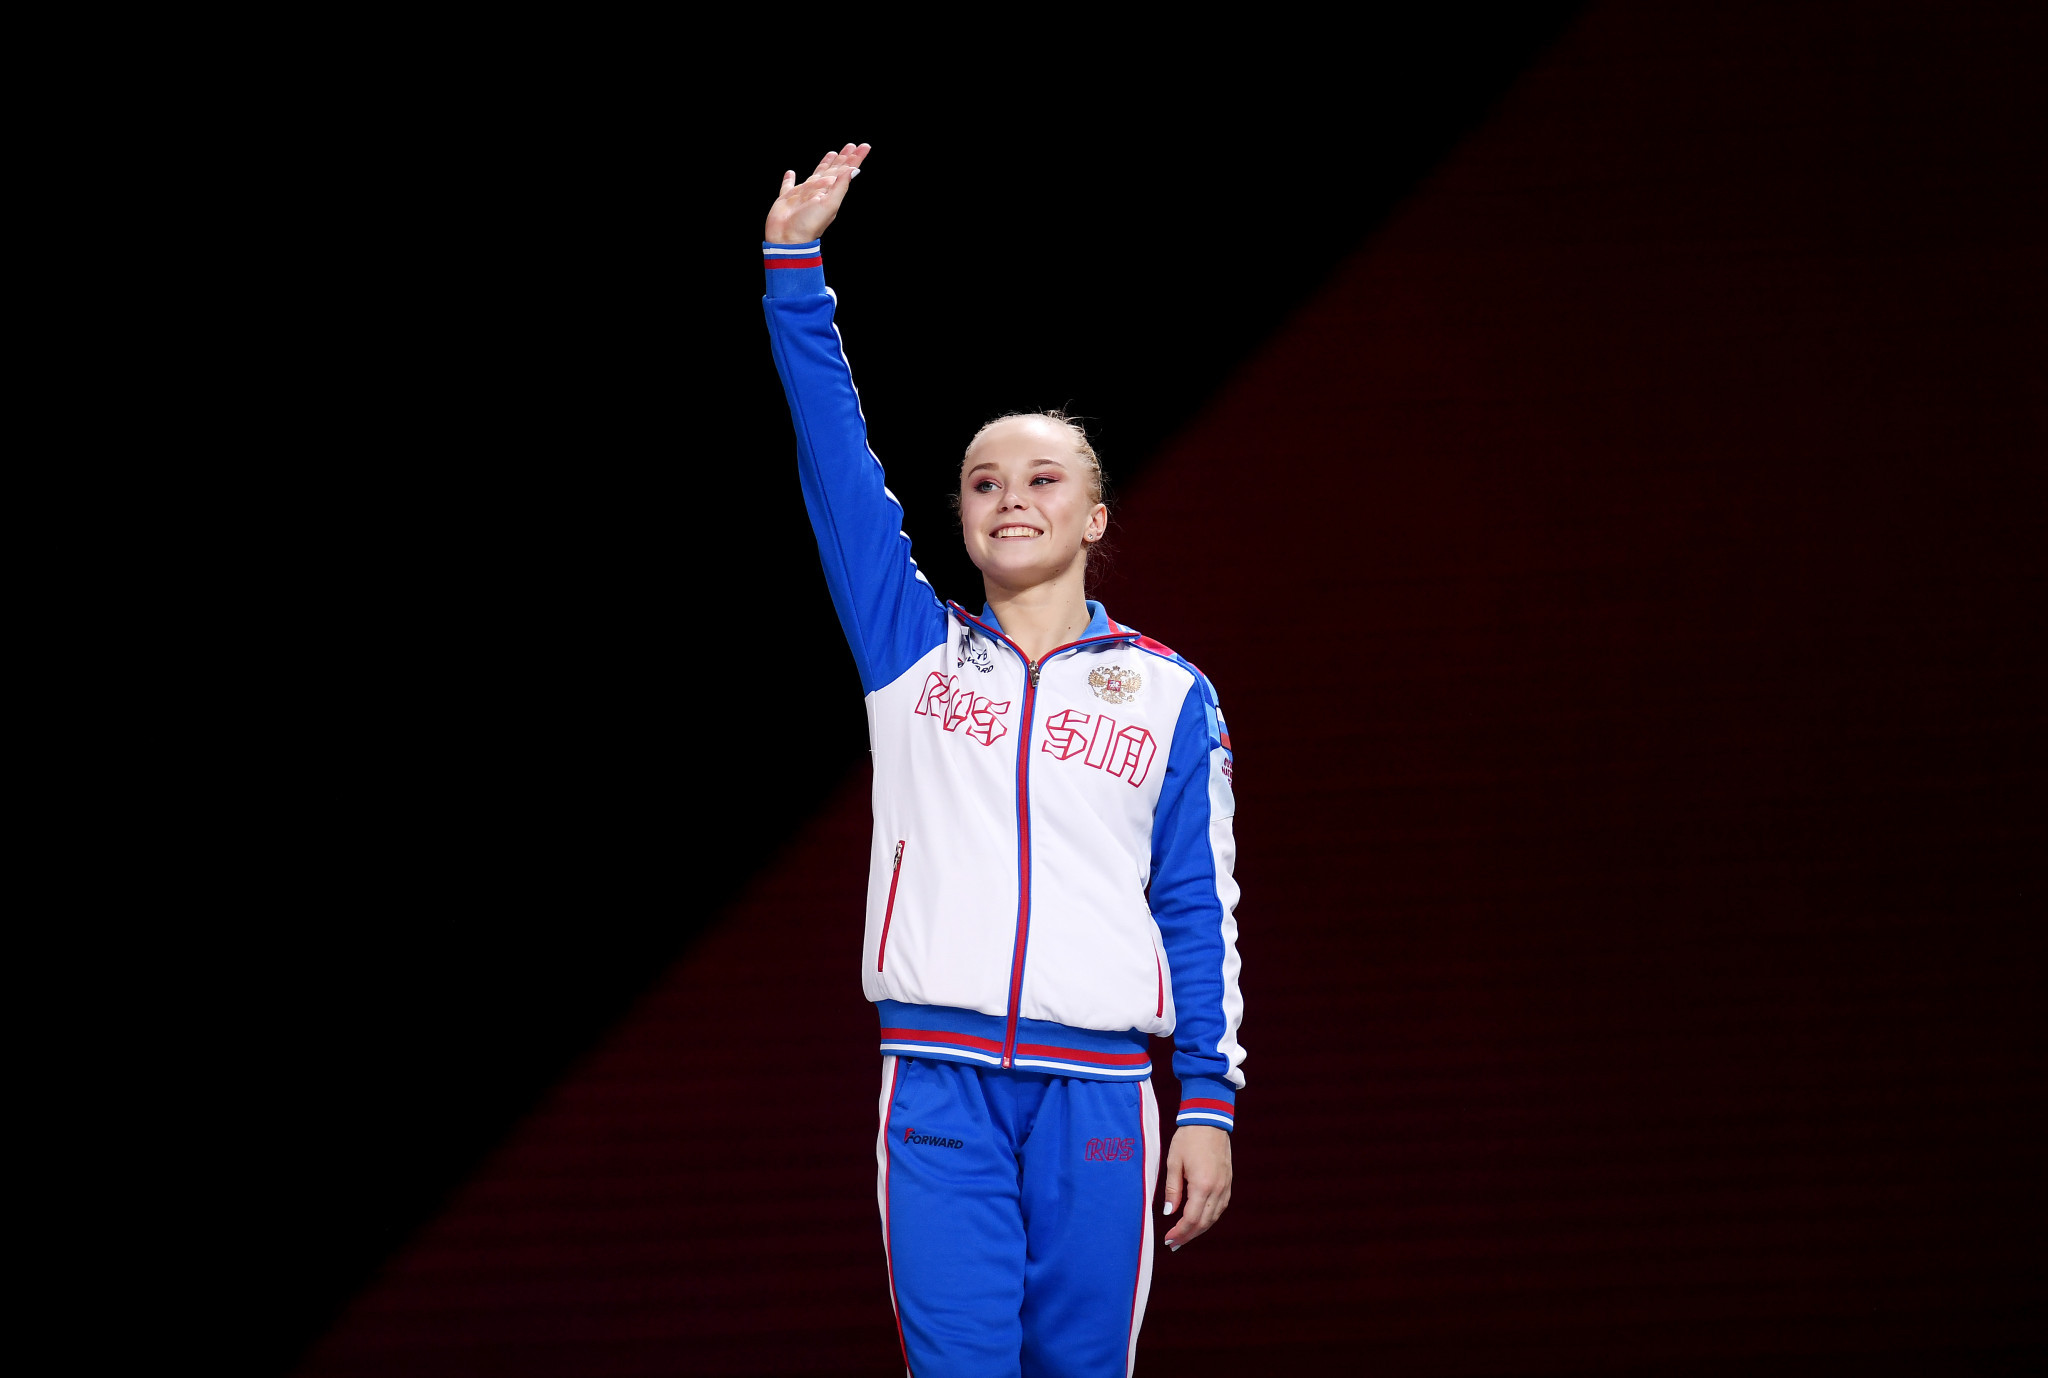 Russian gymnasts impress in women's qualifying at European Artistic Gymnastics Championships